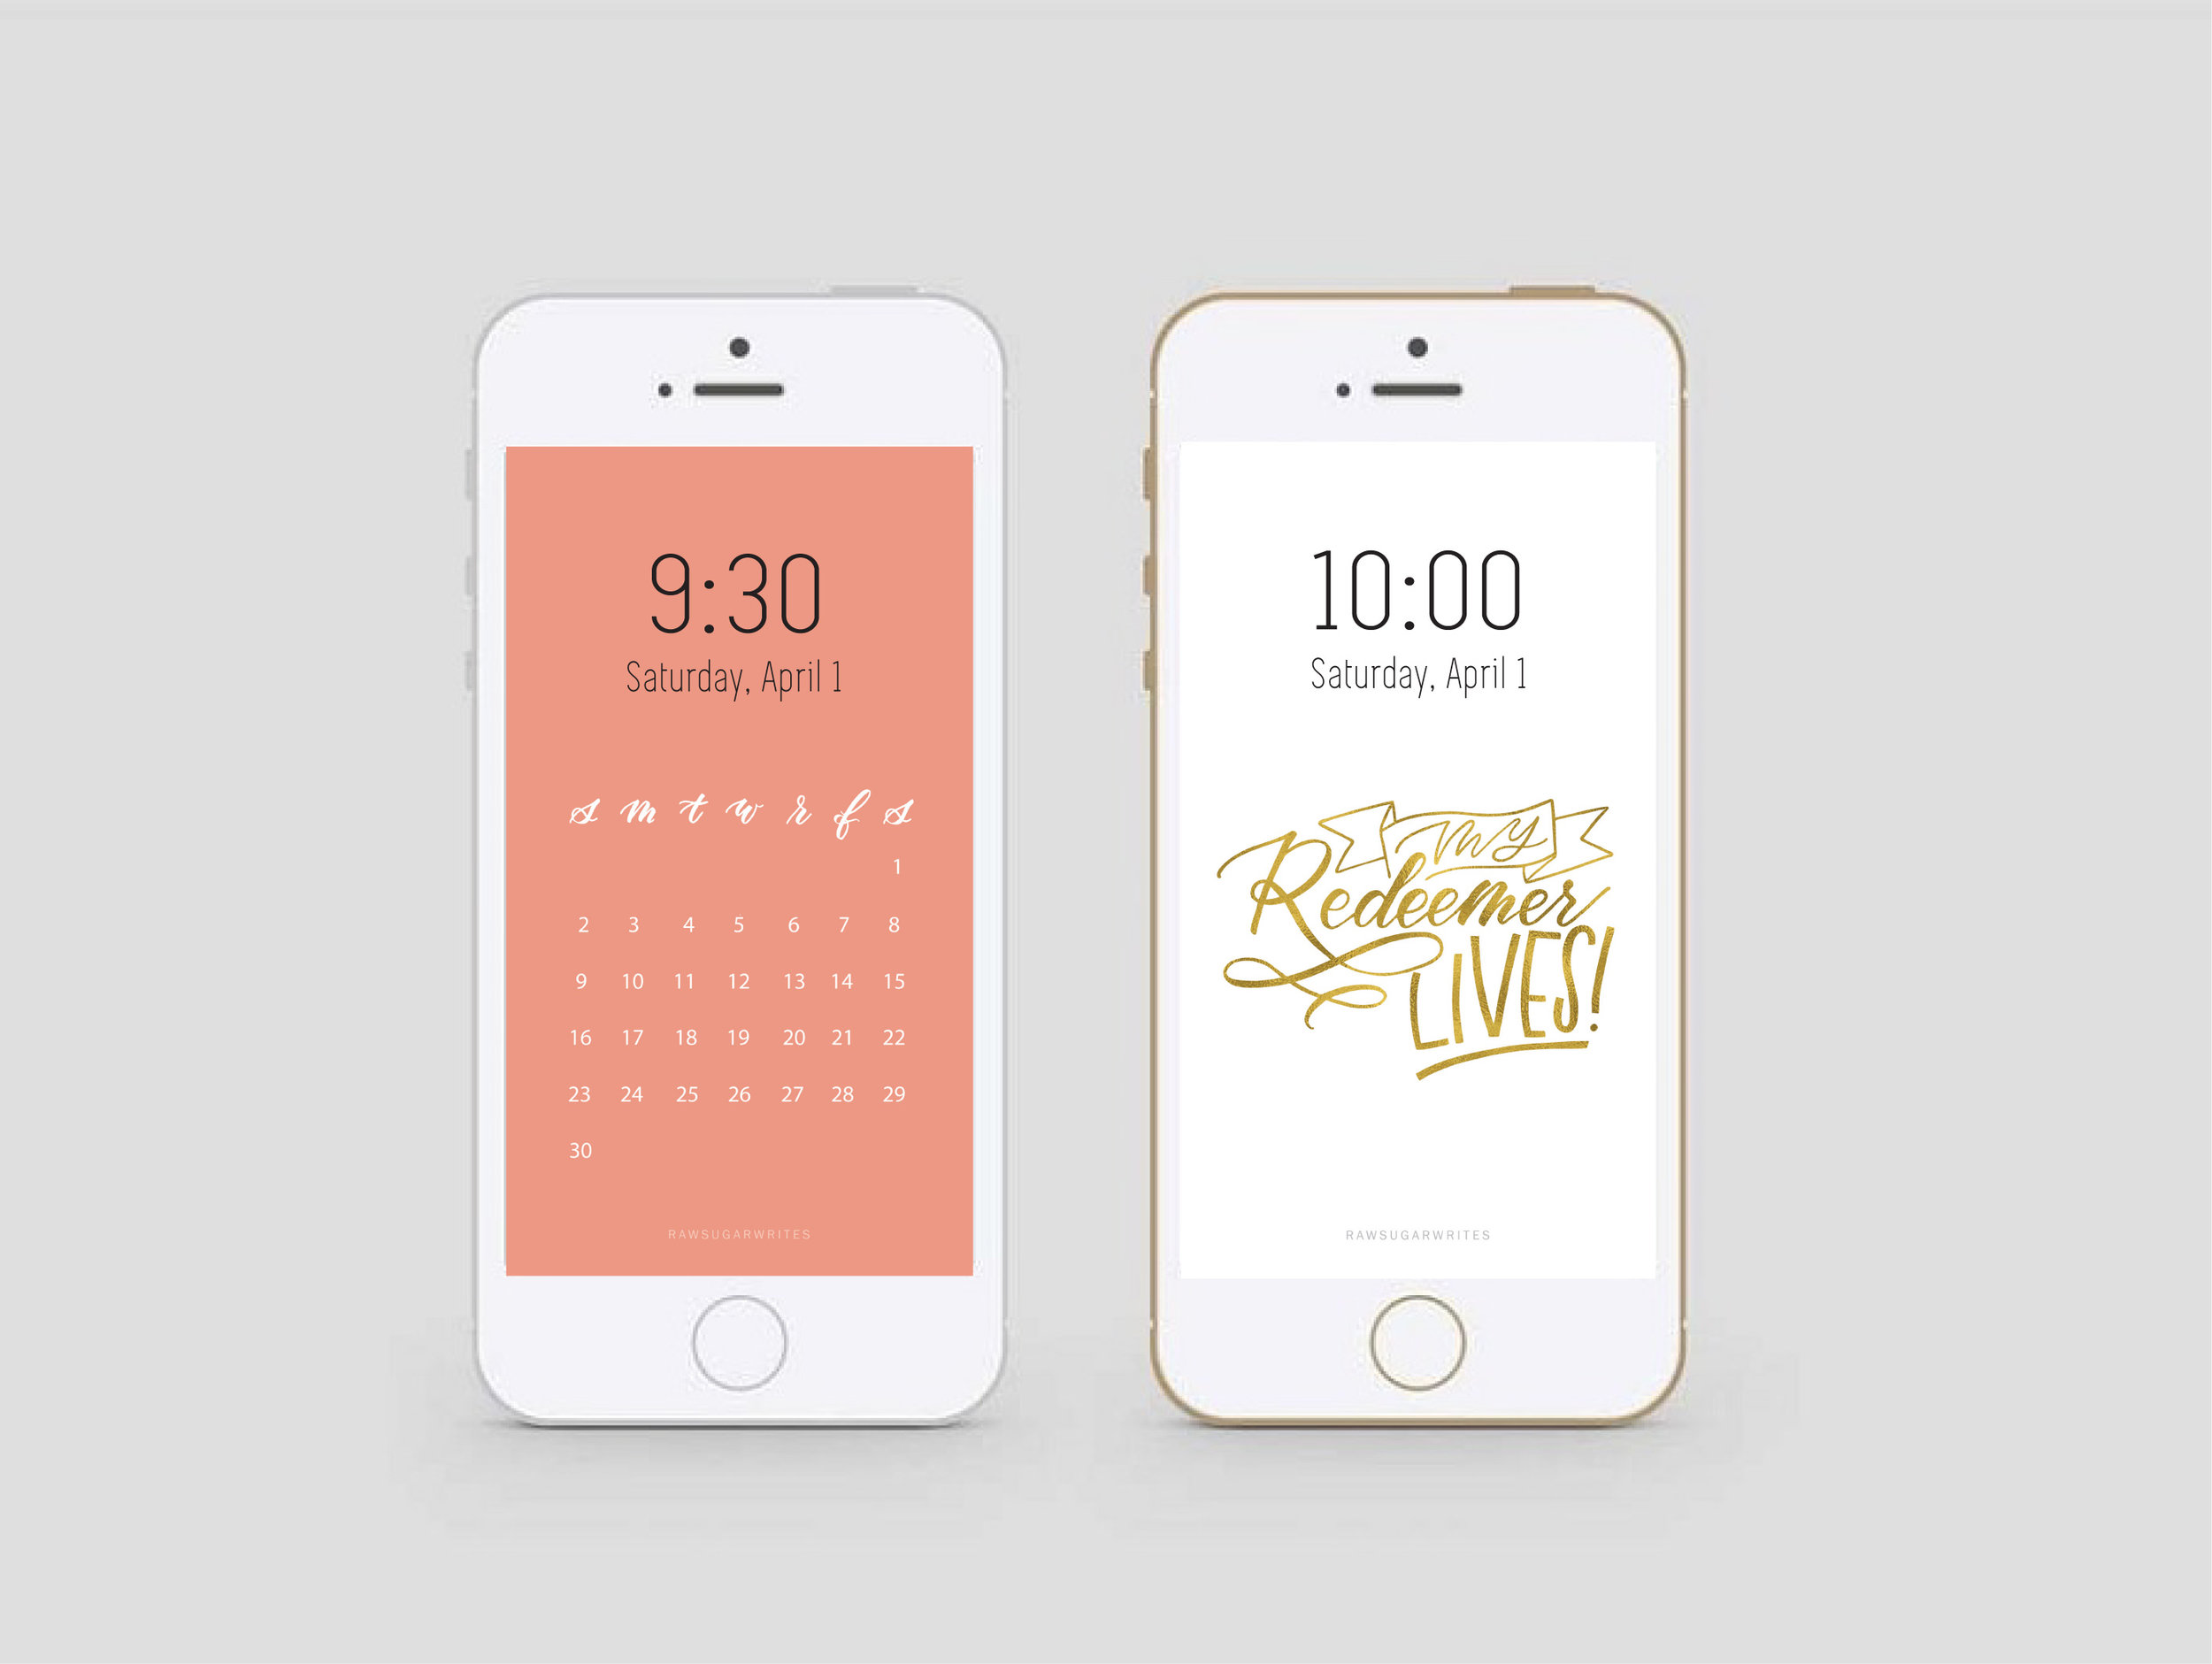 Mockup_April Lock Screens.jpg